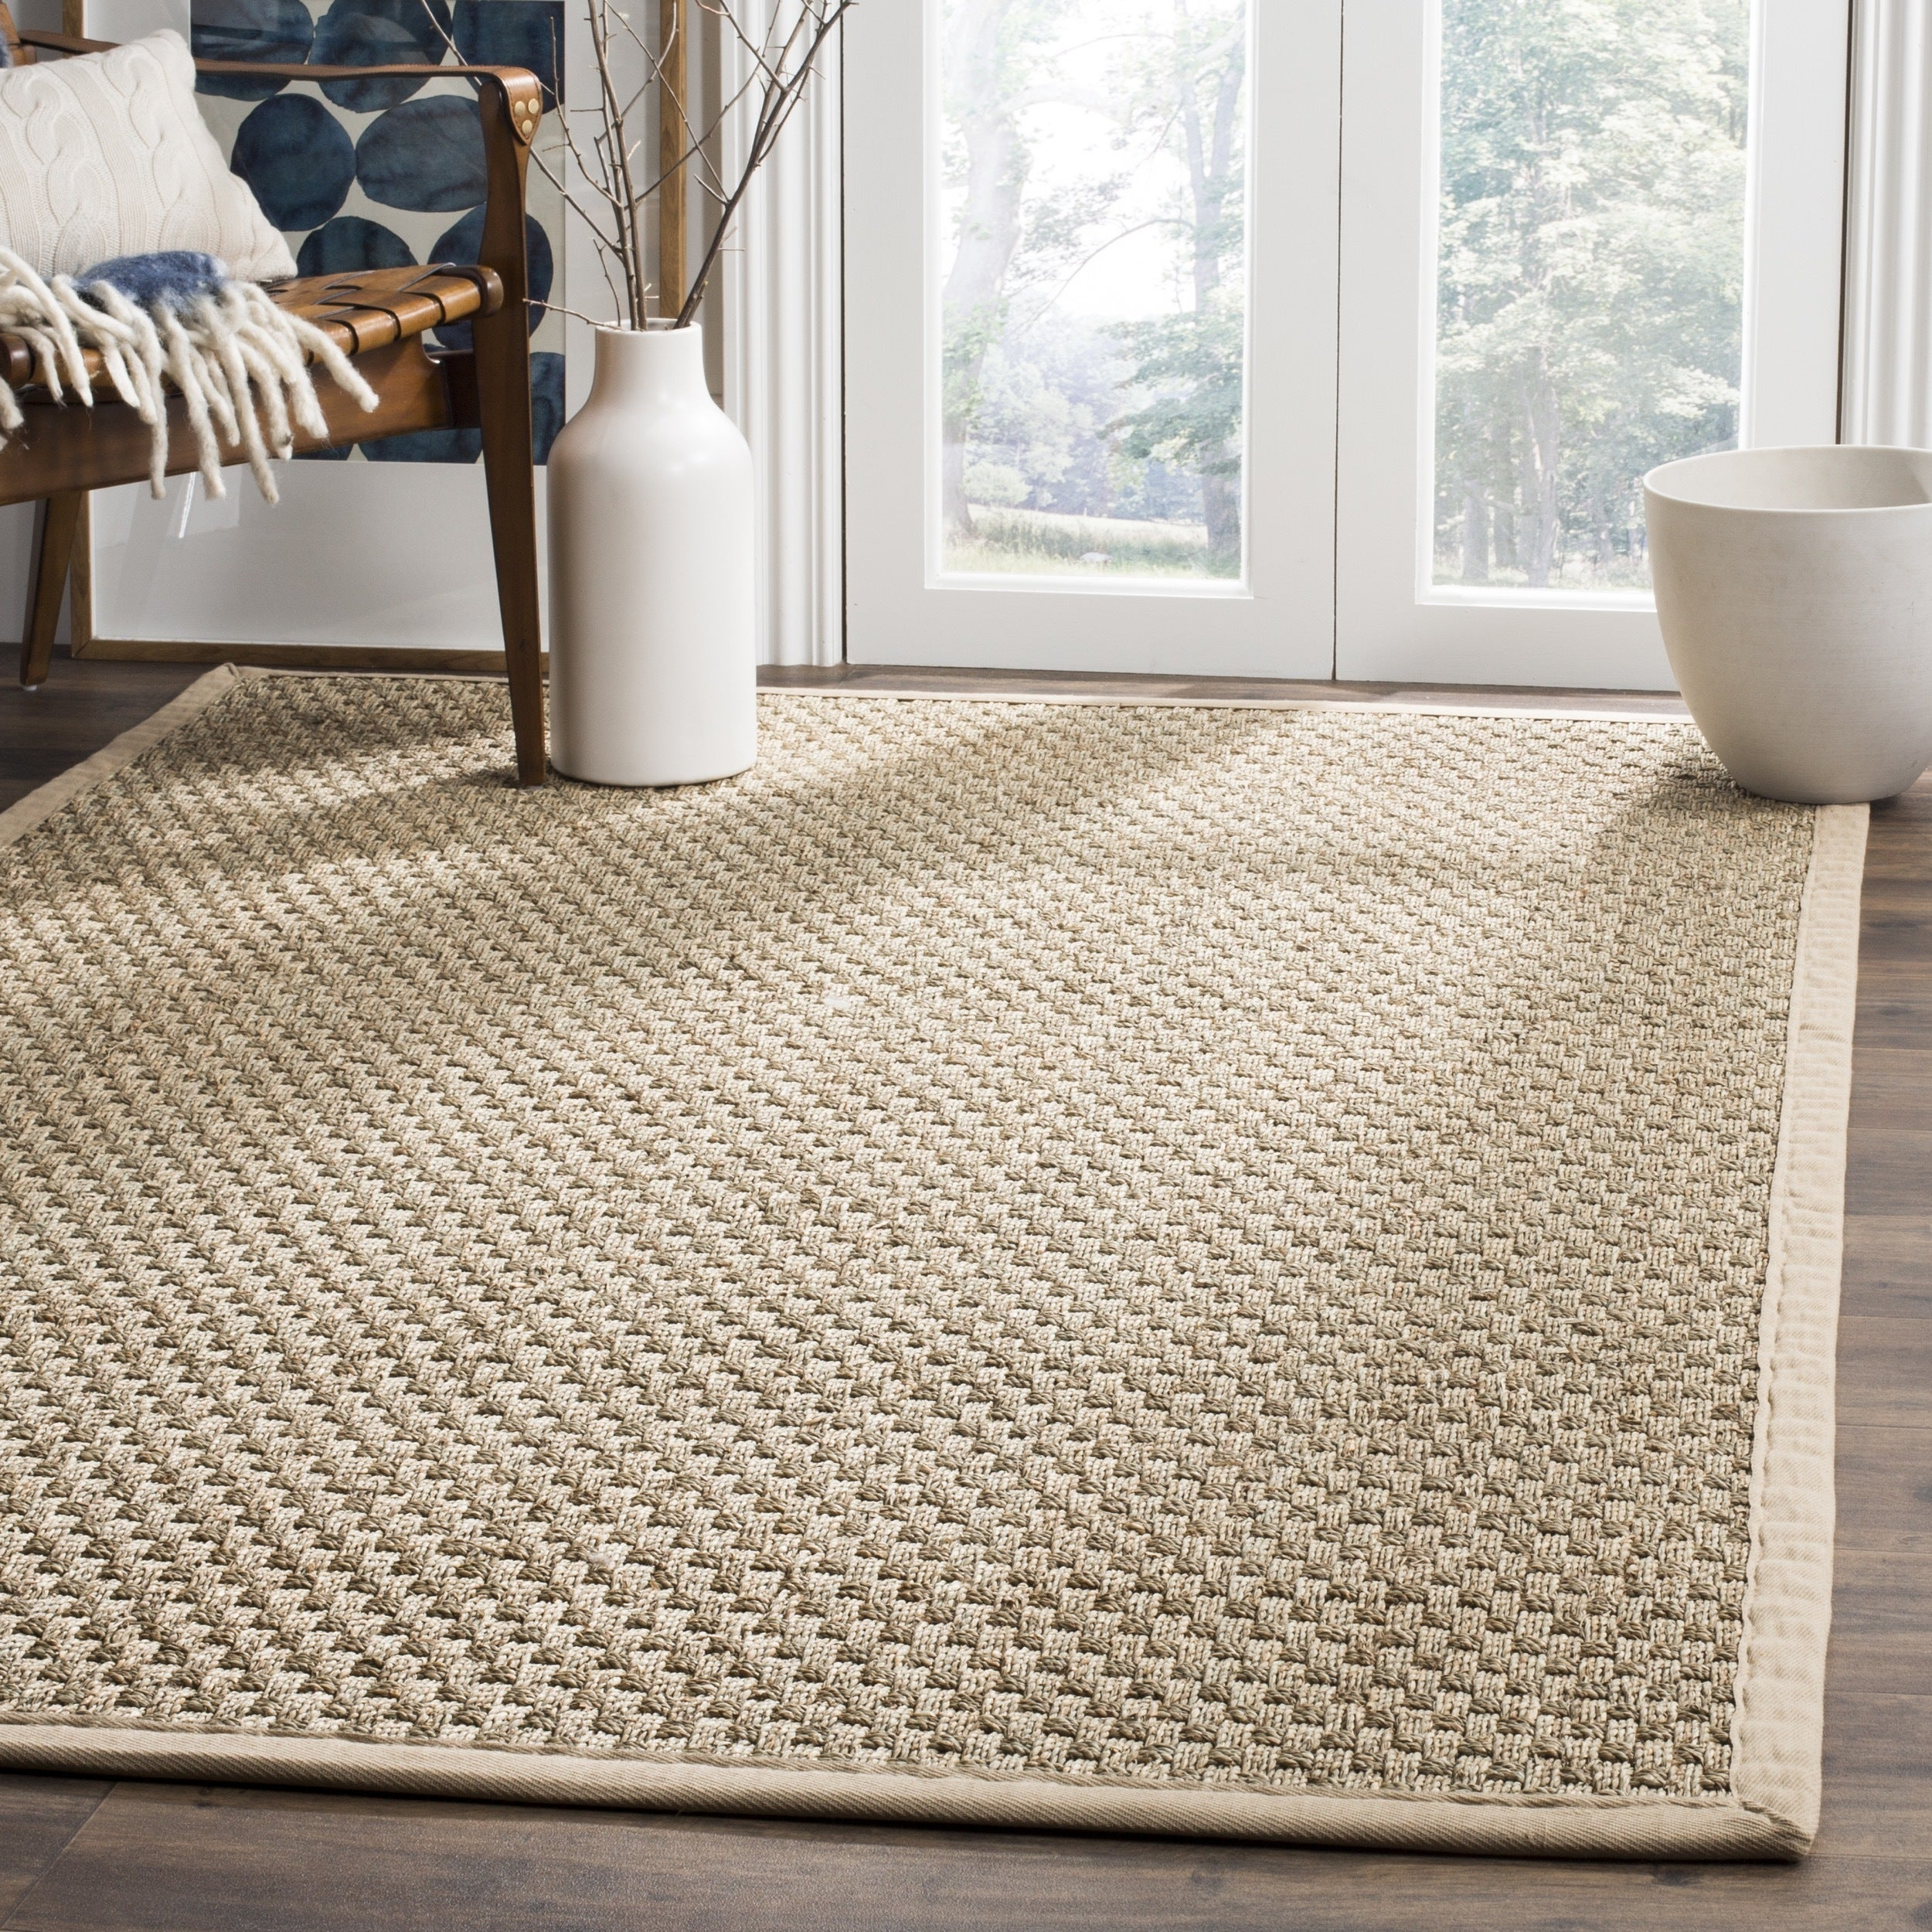 Sisal - what is it and what is it for? 26